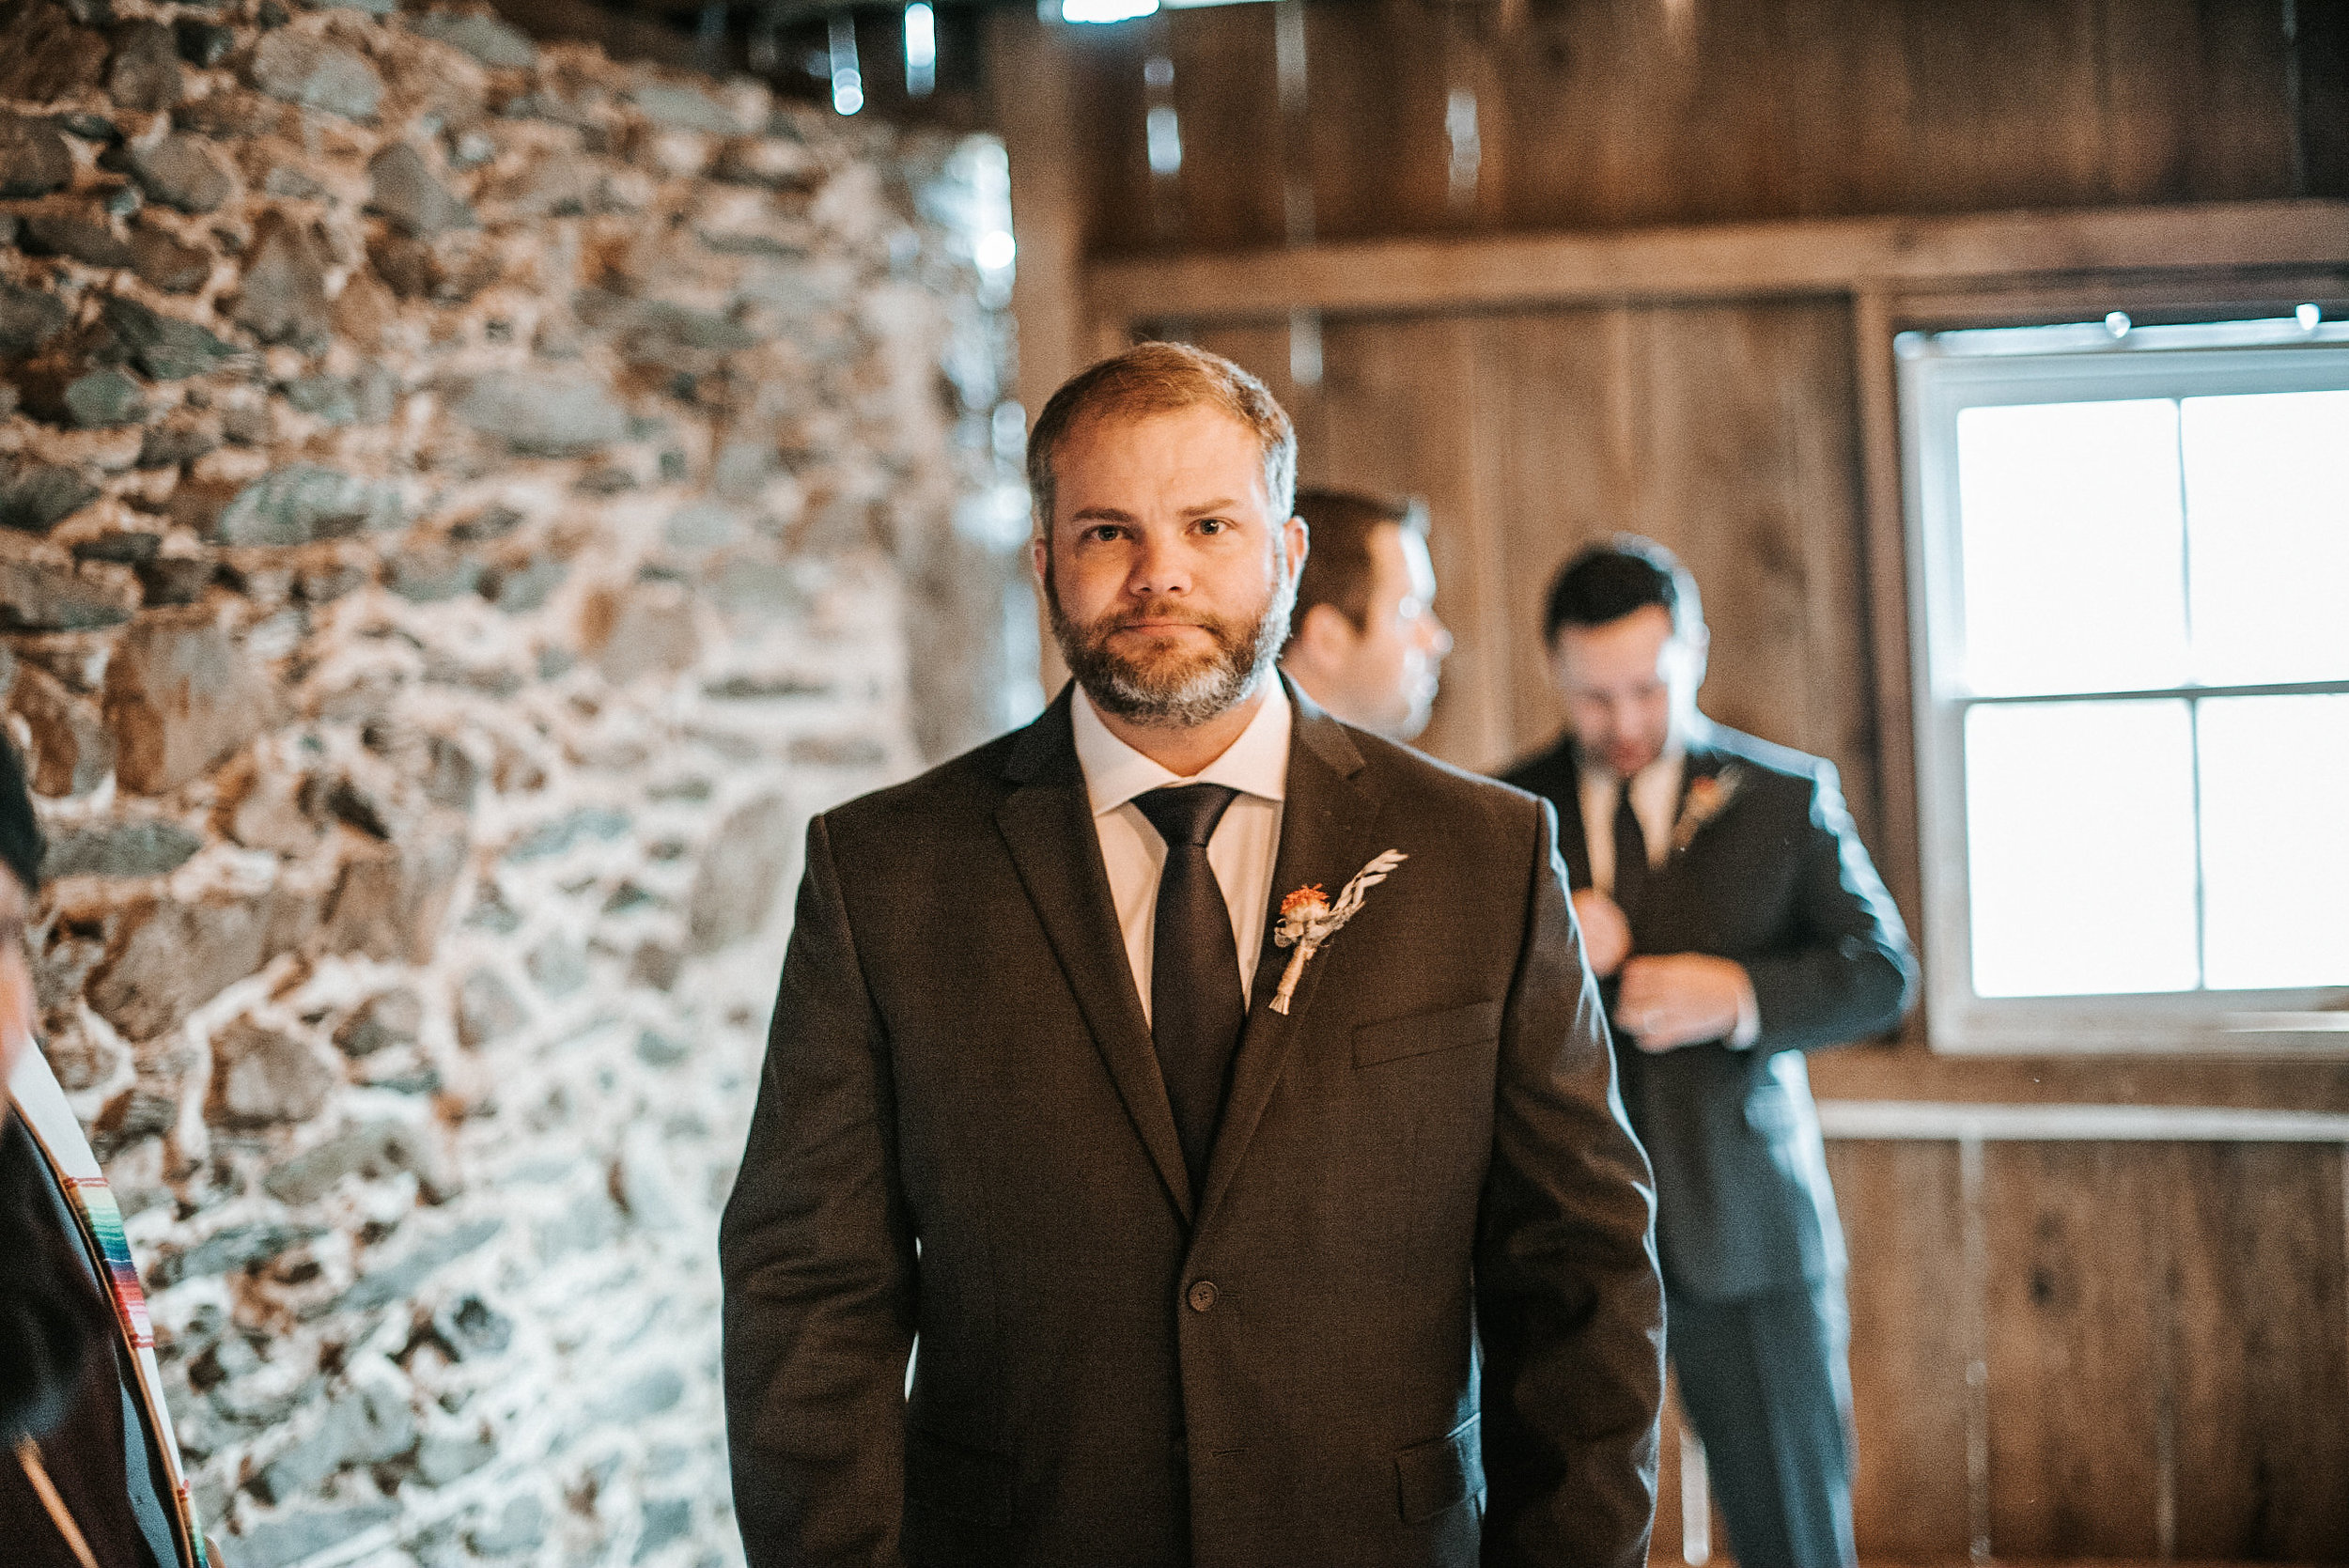 Groom waiting in ceremony space